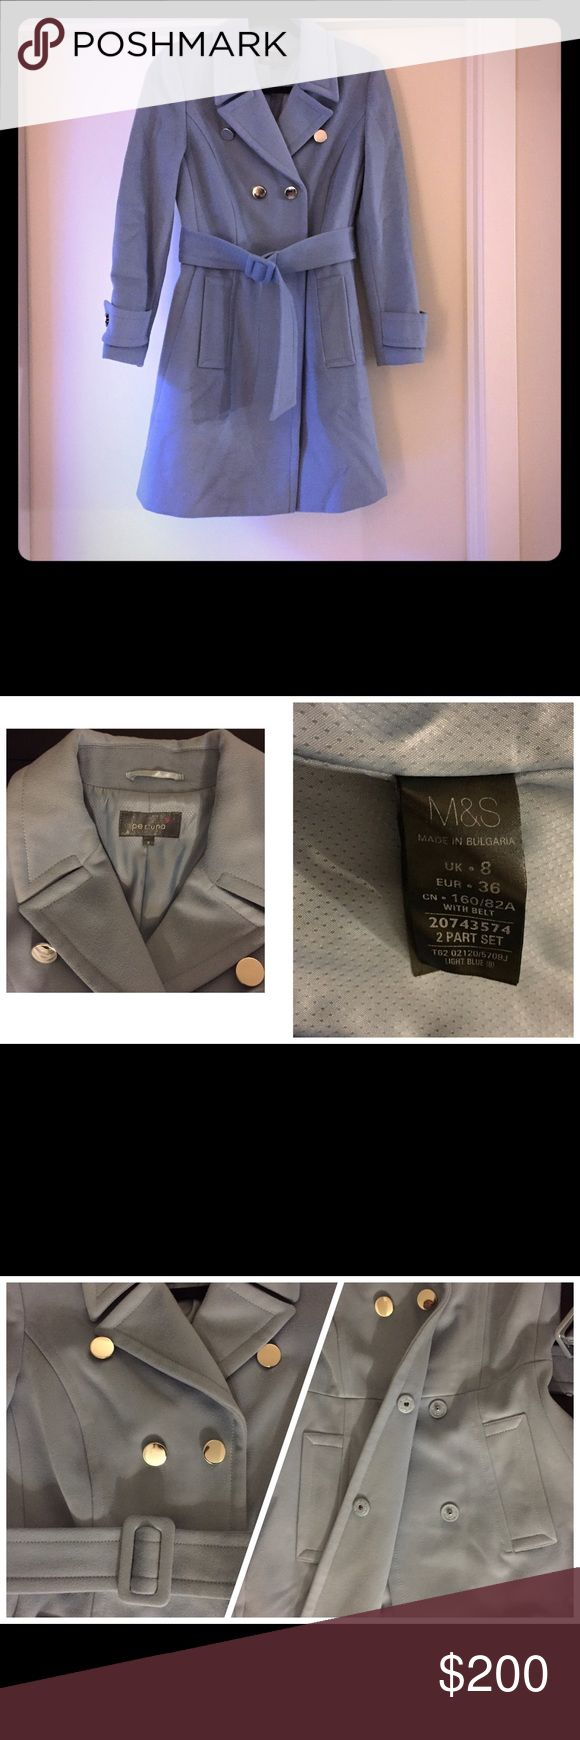 Mark & Spencer _ Per Una _ New M&S is UK's brand. UK : 8, US : 36. Never been worn, color : greyish blue, around knee length, excellent condition, great quality, warm. Mark & Spencer Jackets & Coats Trench Coats